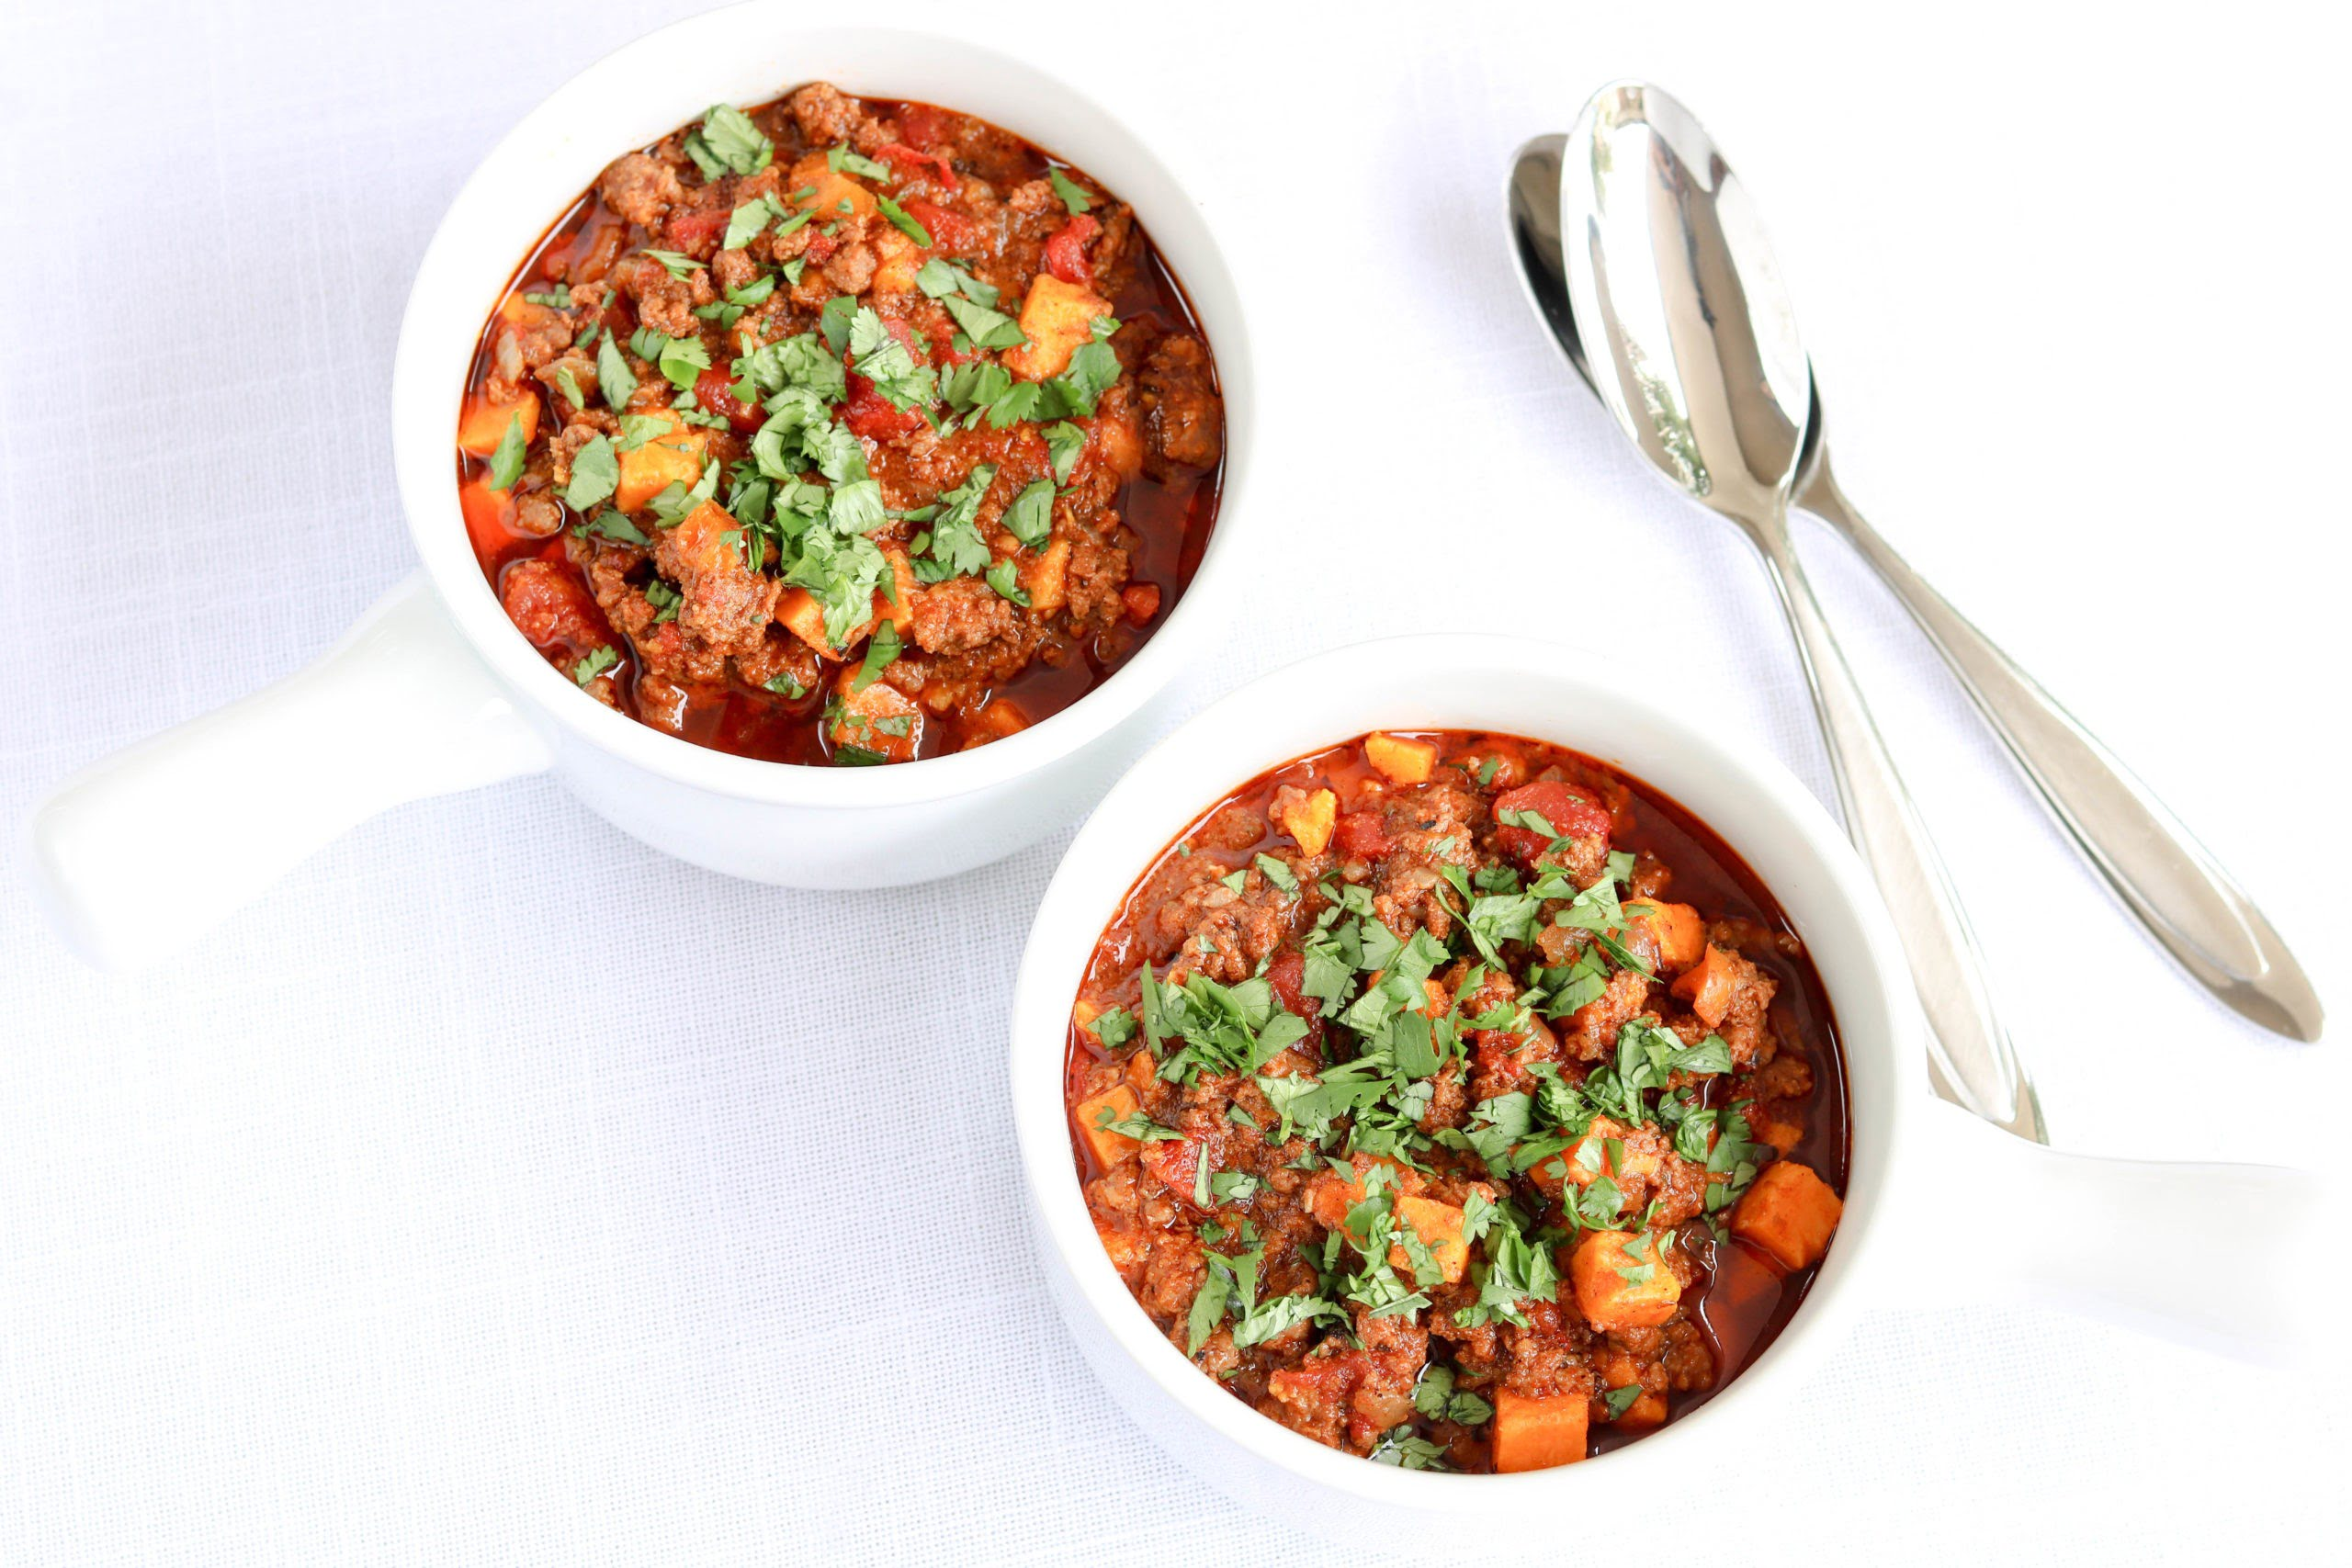 Instant Pot Beef and Sweet Potato Chili